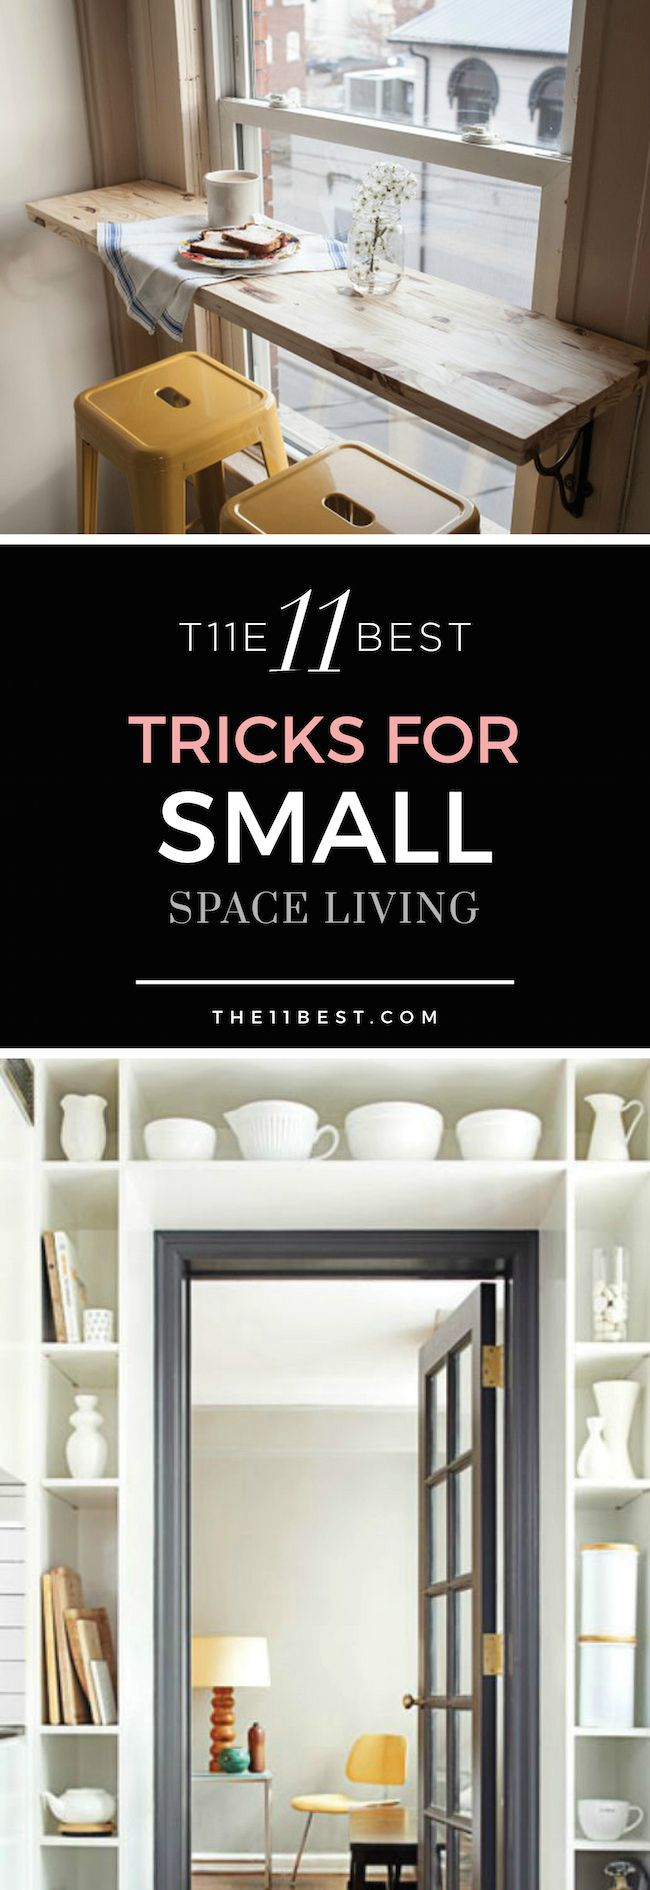 Small Space Decorating top 25+ best small spaces ideas on pinterest | kitchen